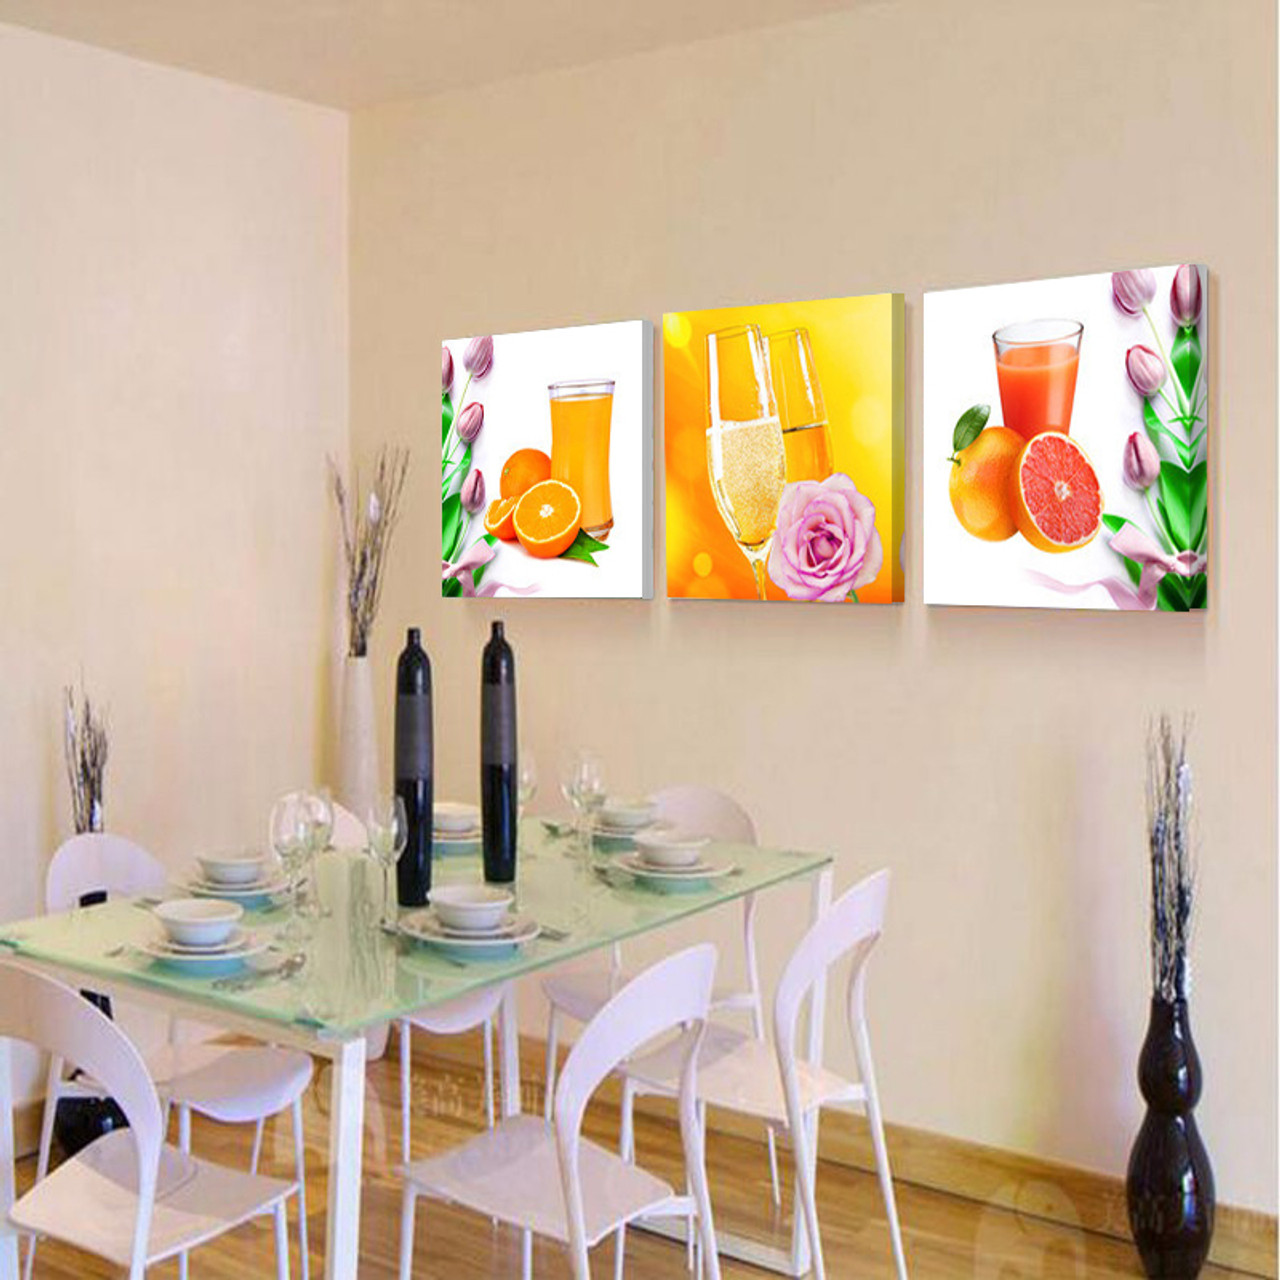 Prints Canvas Painting Dining Room Decorative Picture Canvas Paintings Modern Flower Kitchen Wall Decor Pictures No Frame Hy56 Onshopdeals Com